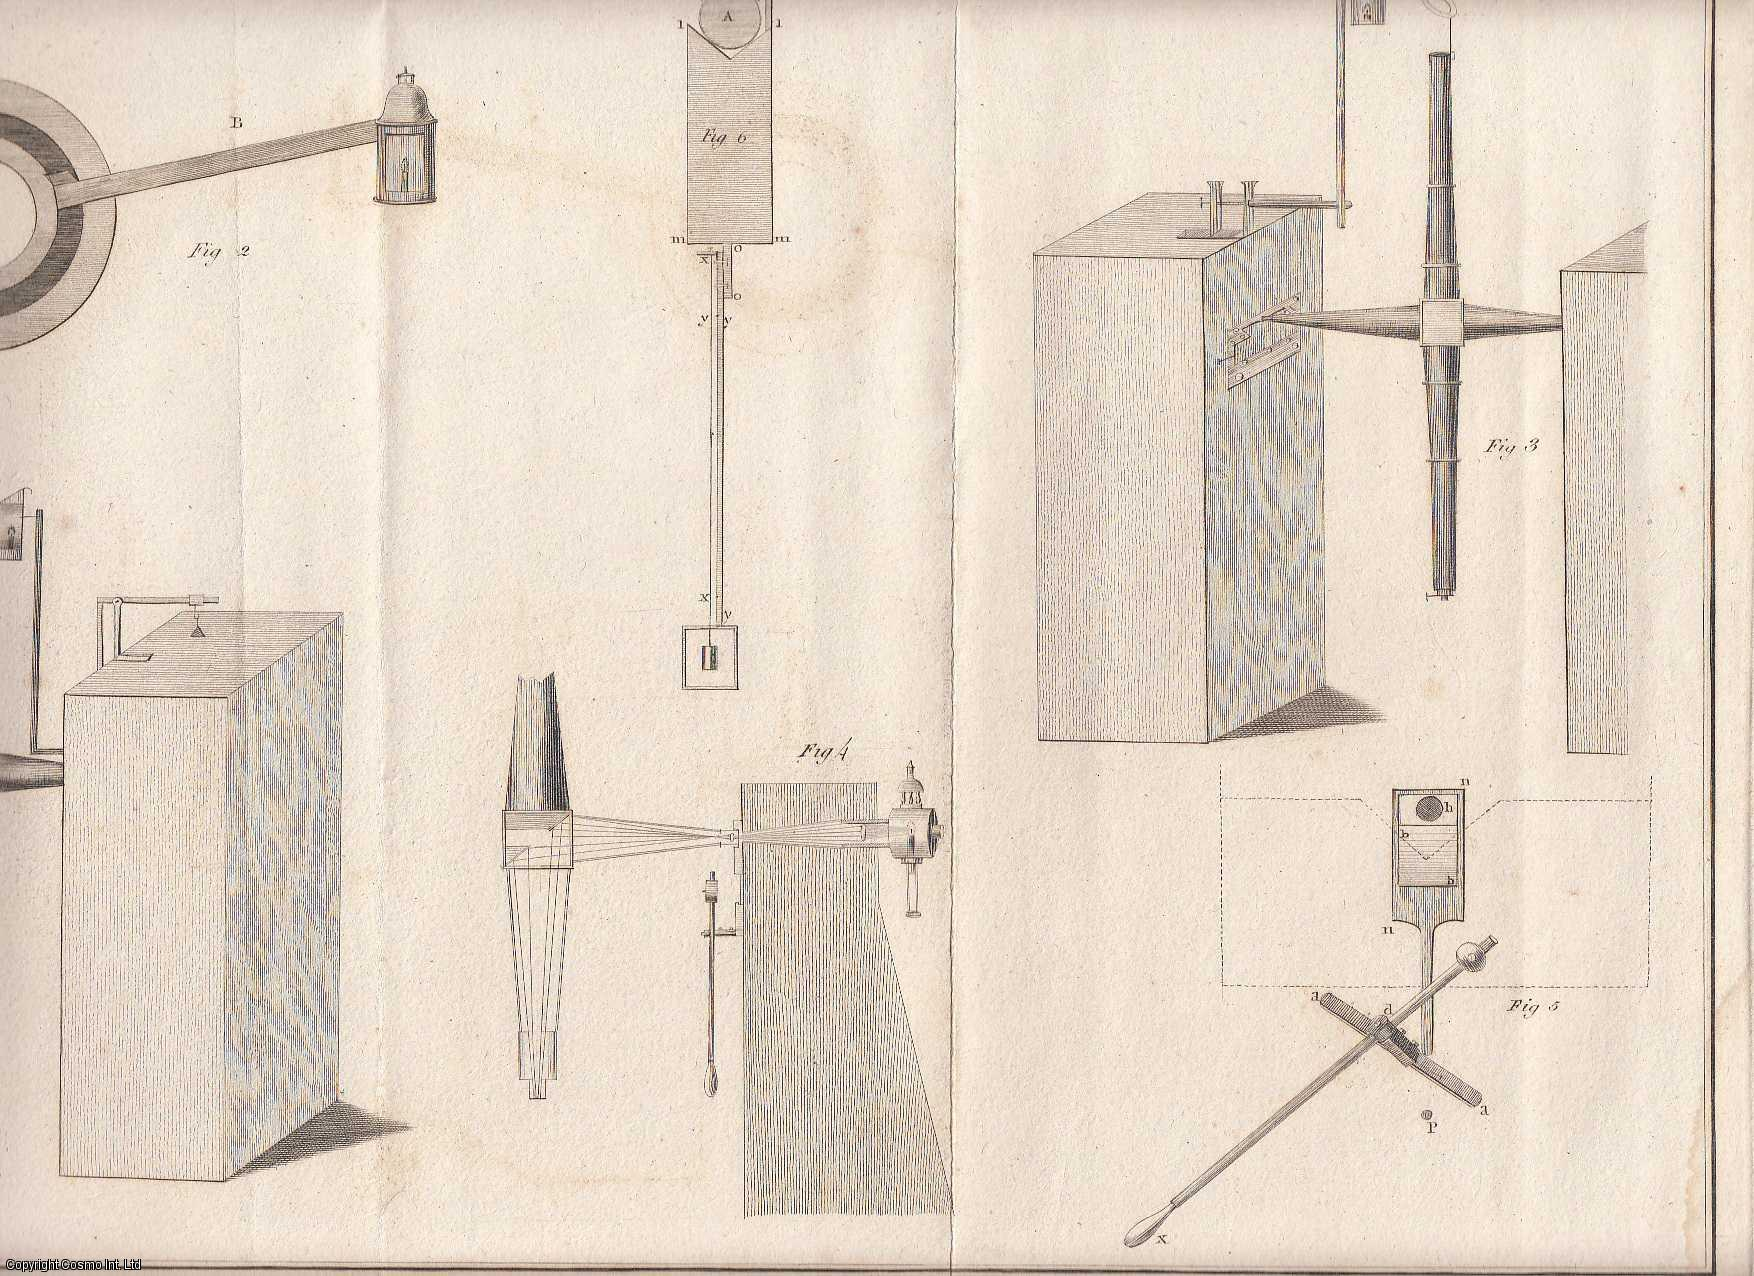 An Account of a new Method of Illuminating the Wires, and Regulating the Position of the Transit Instrument.  From Transactions of the Royal Irish Academy., Ussher, Rev. Henry.